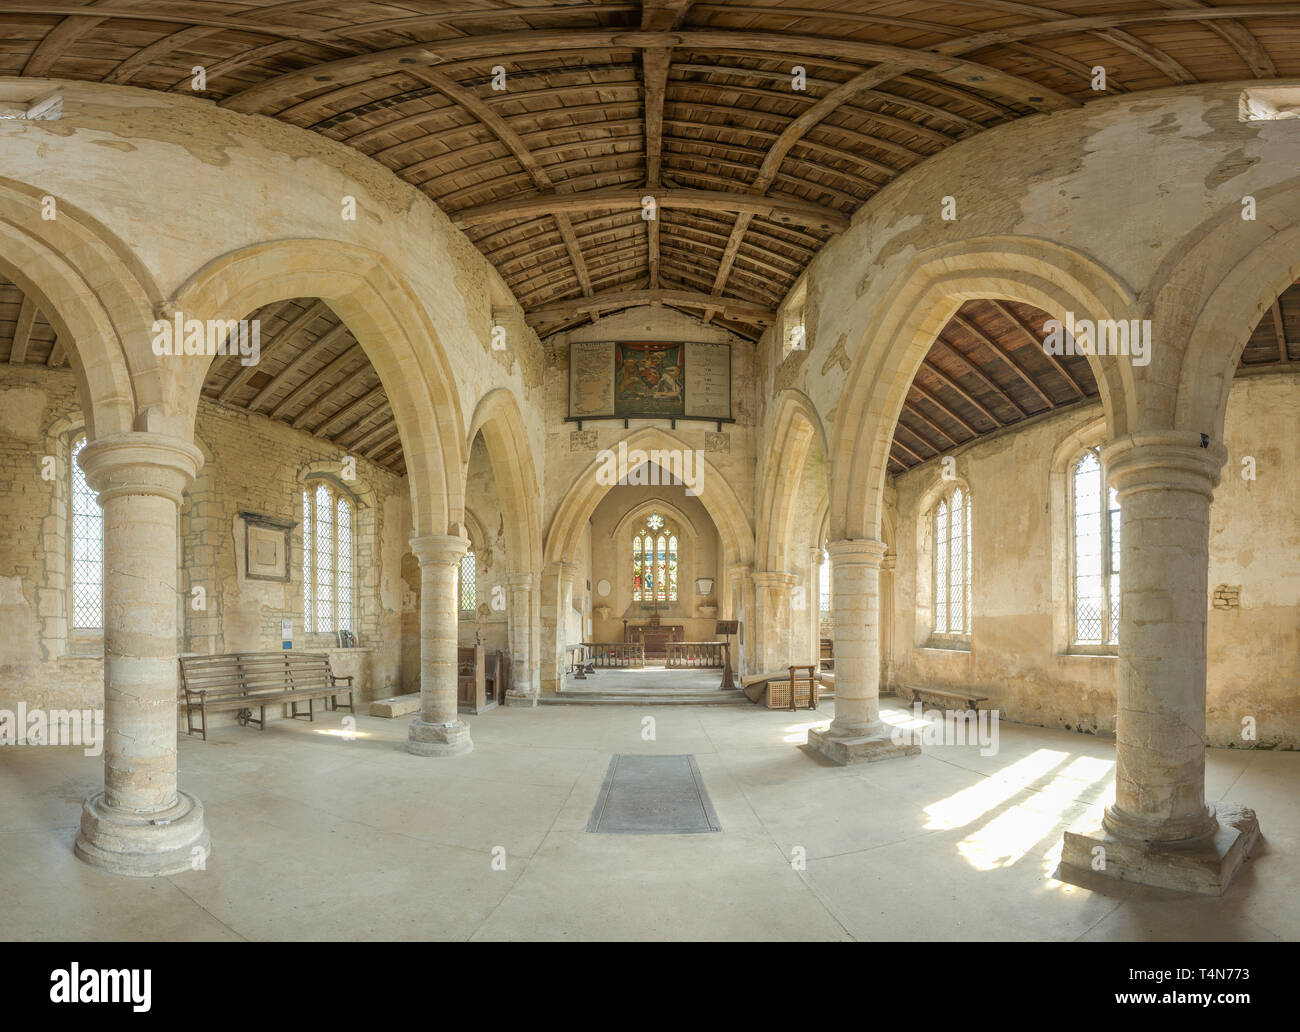 Started in the thirteenth century, the village medieval church at Aldwincle, now redundant and bare, was where the poet John Dryden was baptised. - Stock Image